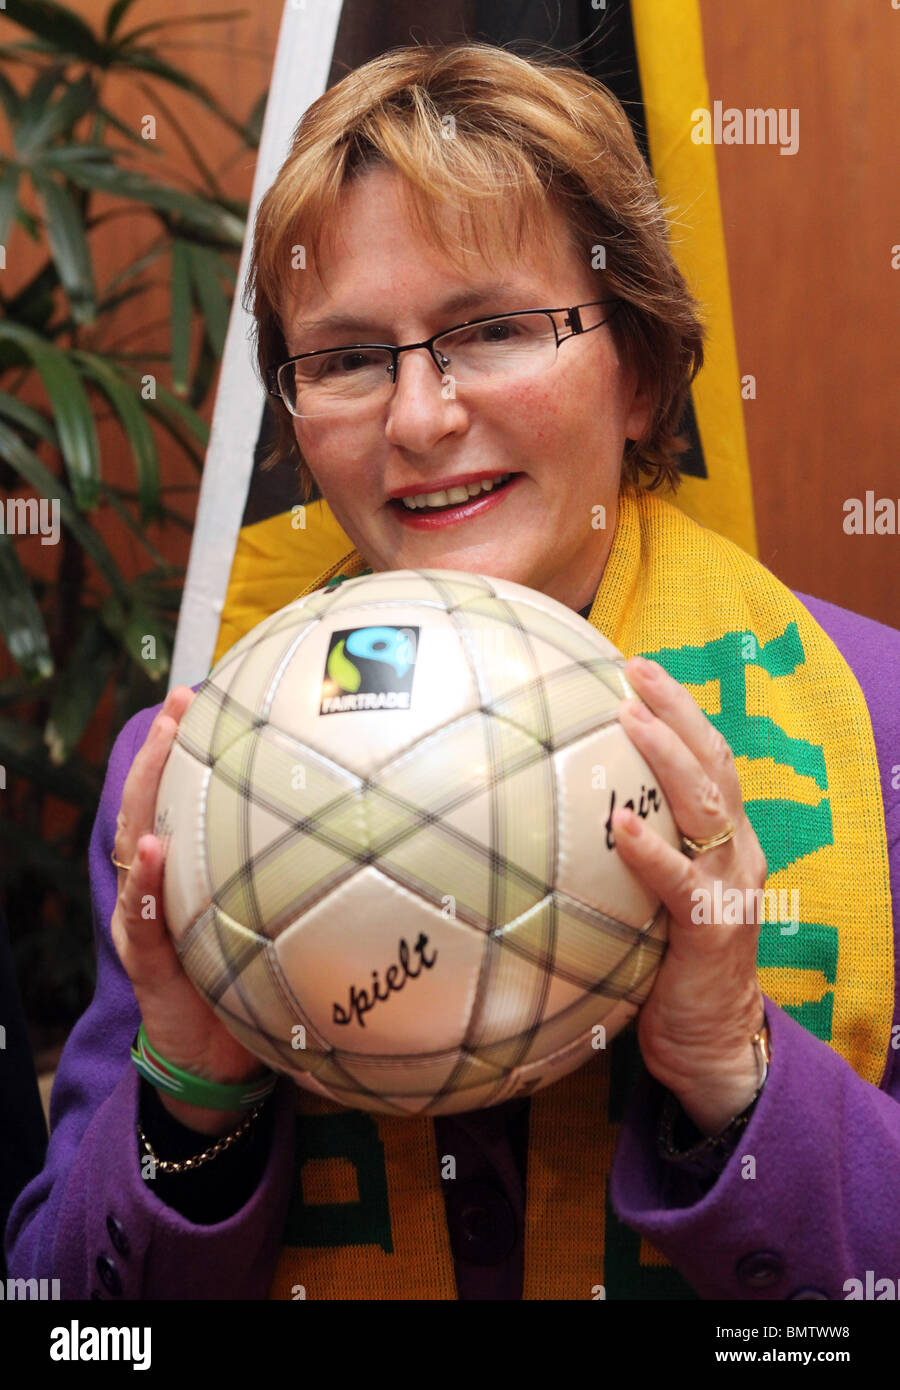 Western Cape Premier HELEN ZILLE holding soccer ball - Stock Image